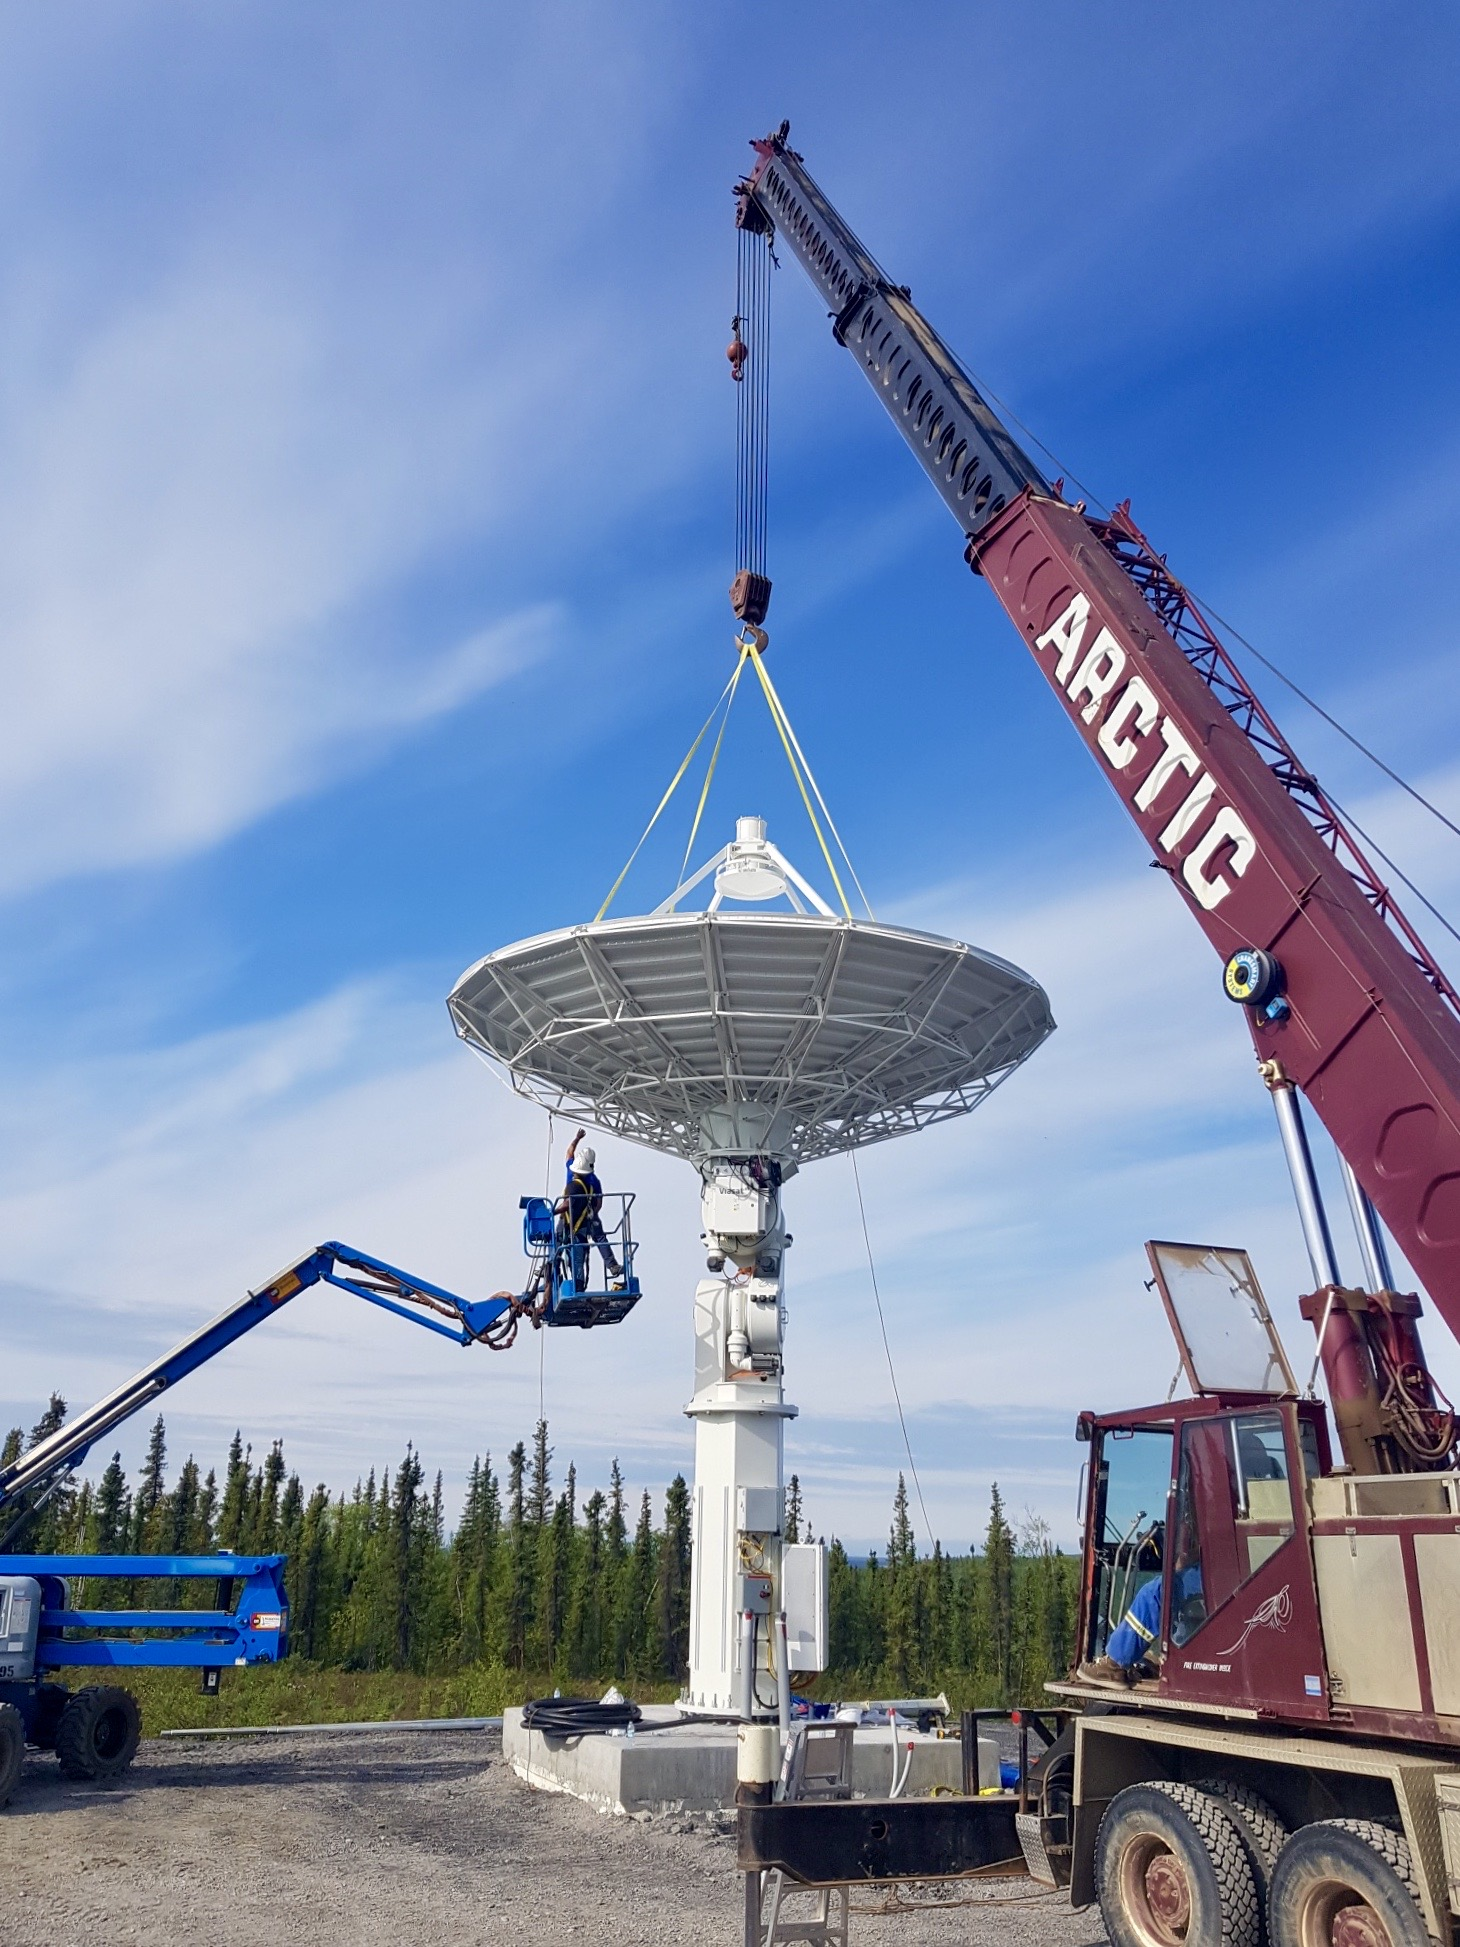 7.3 m antenna in Inuvik, Canada. Installed in 2020.